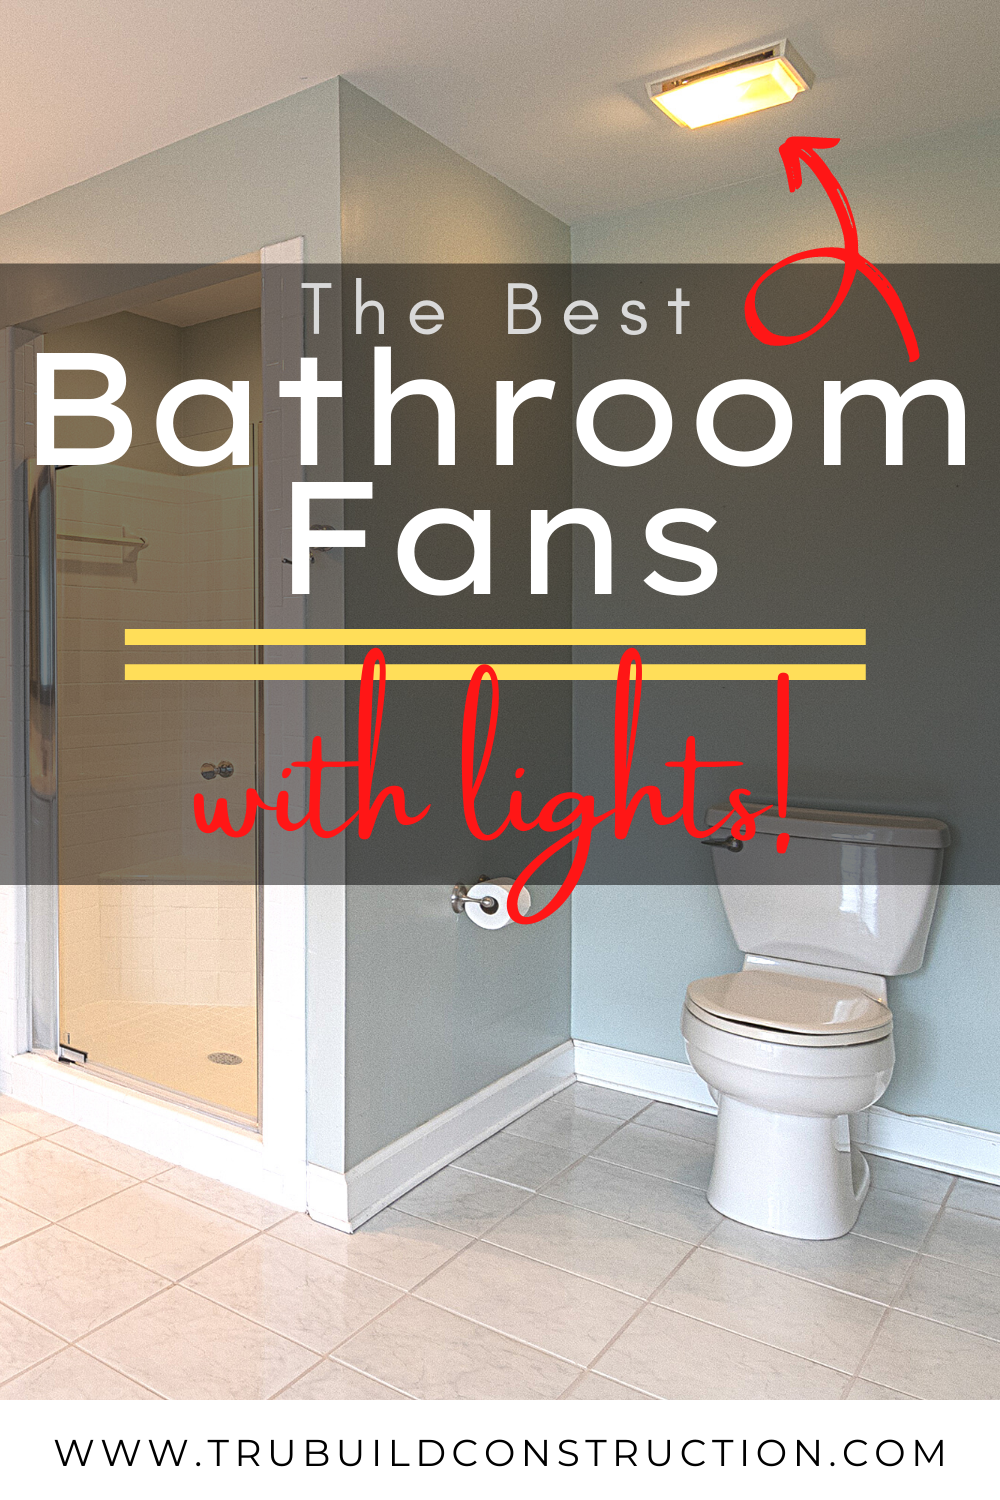 The Best Bathroom Fans With Lights For, Best Bathroom Vent Light Combo